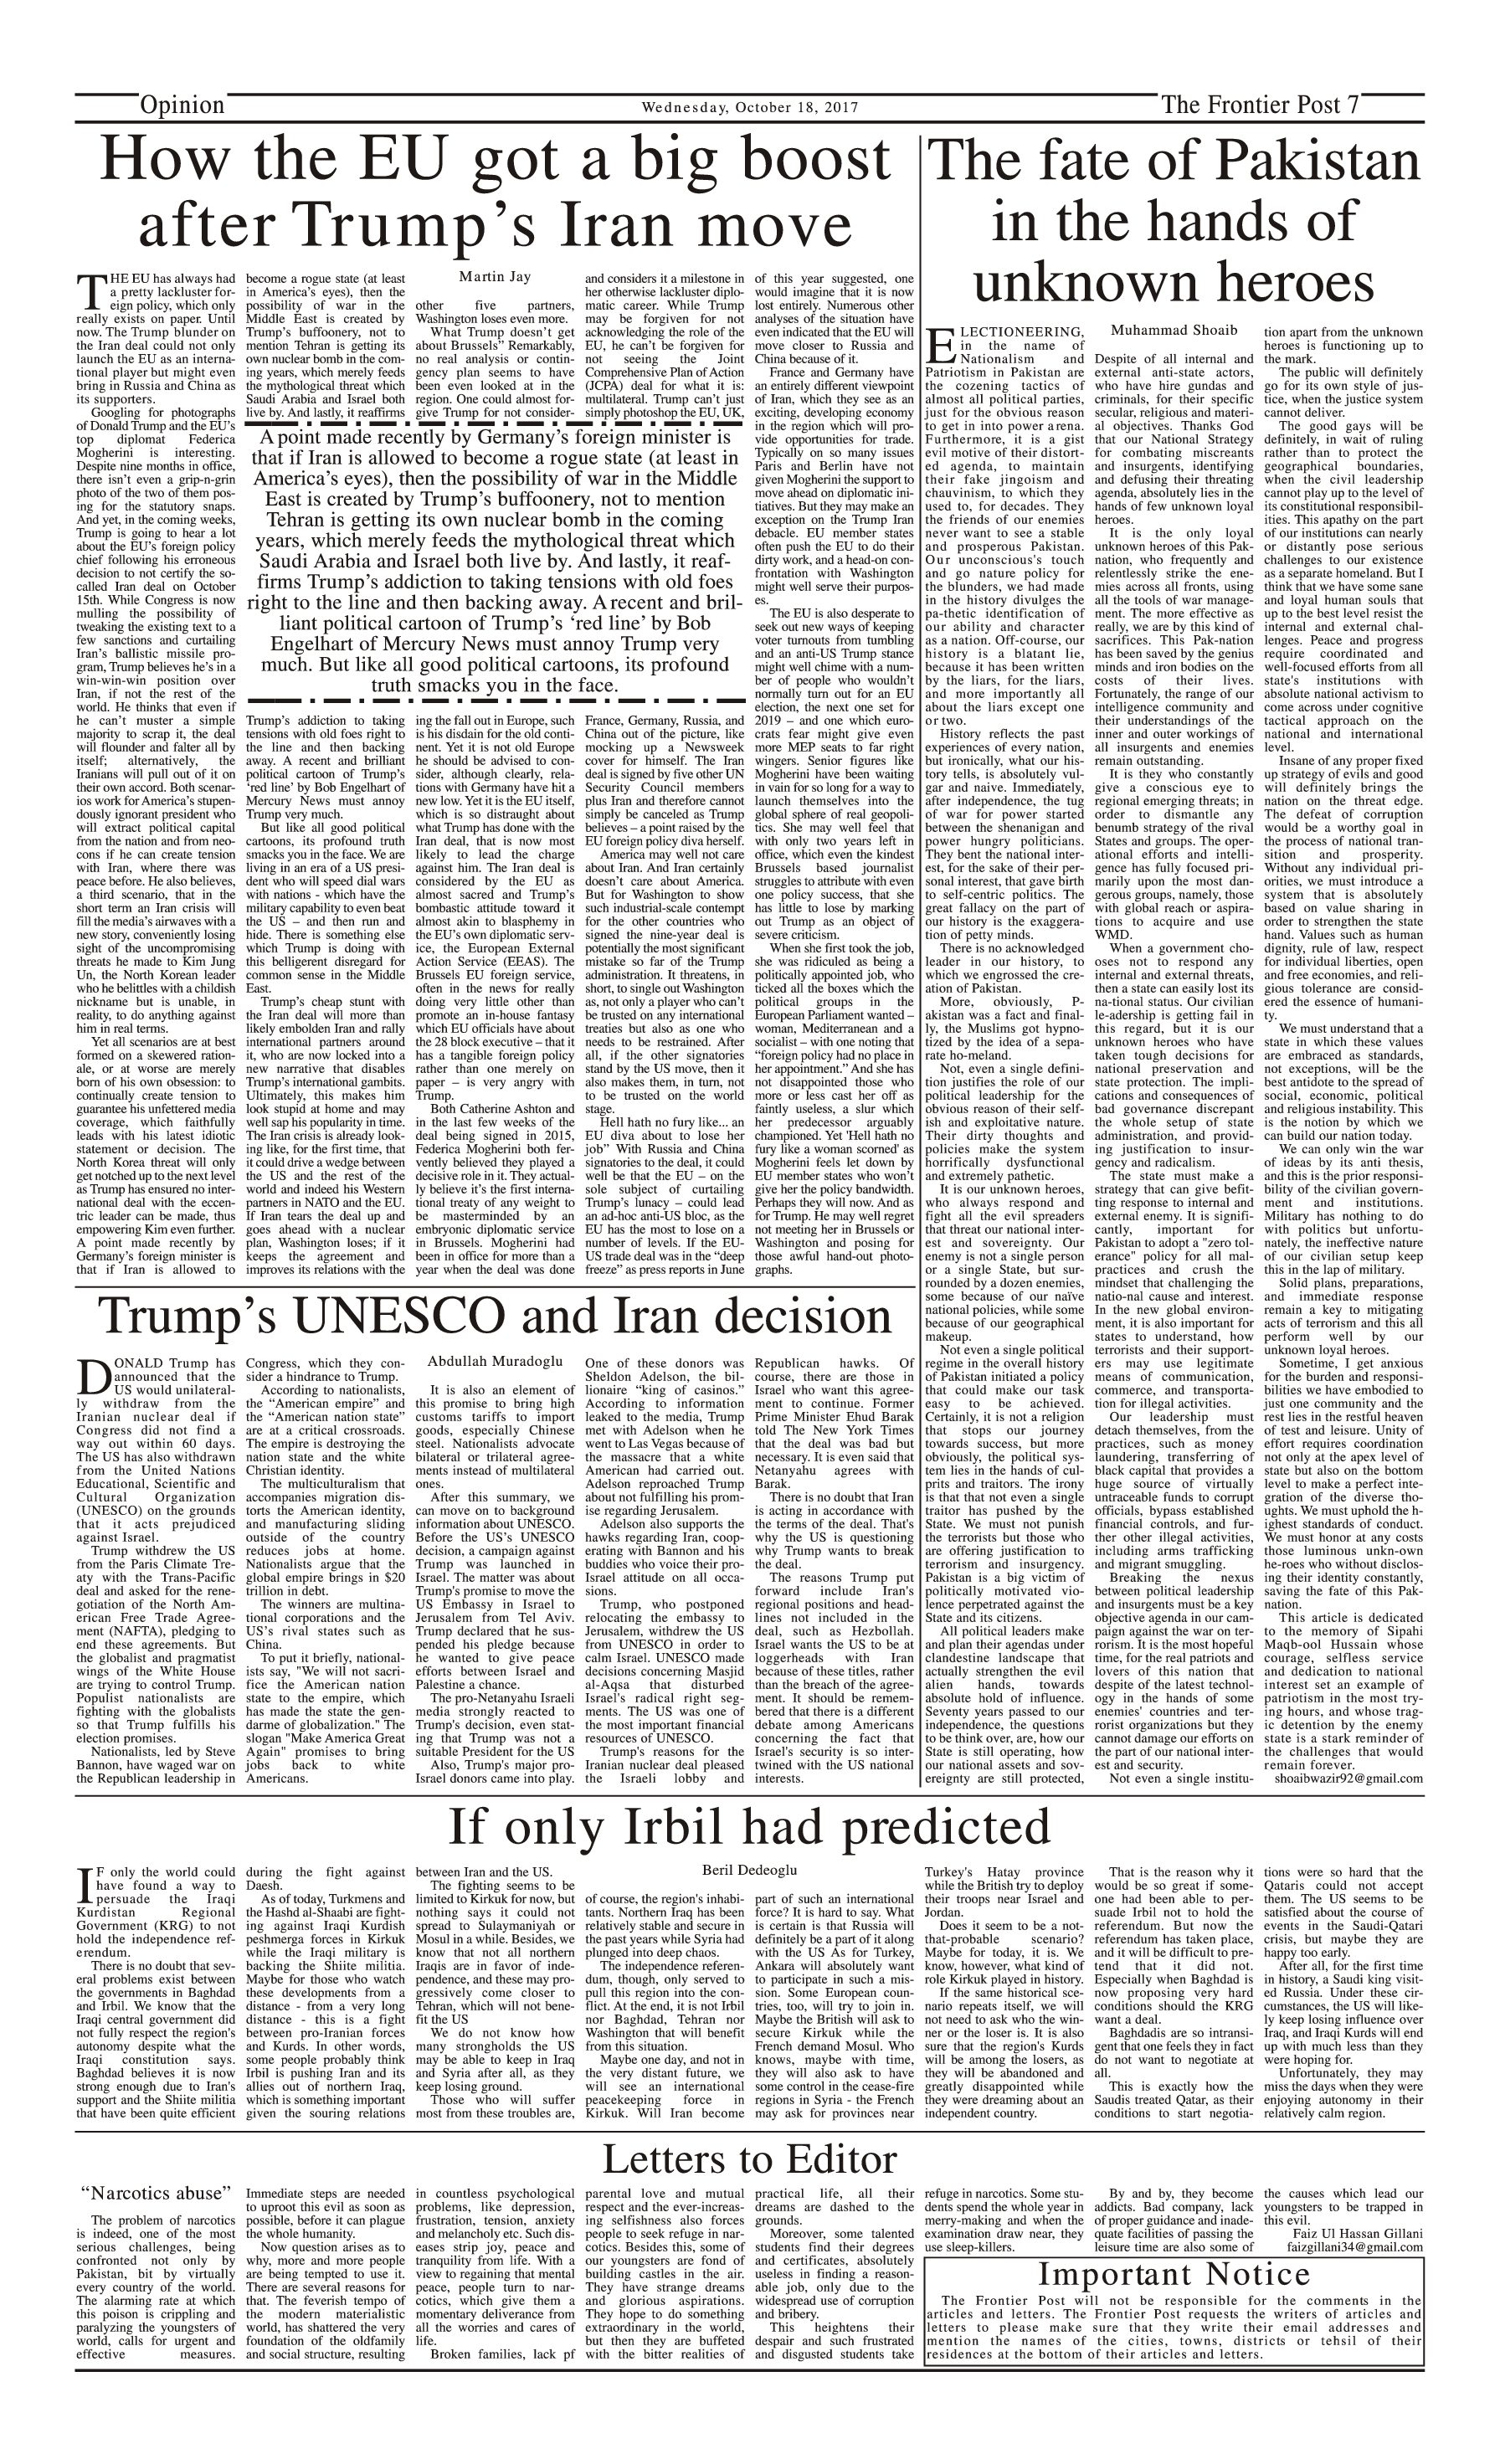 Opinion Page 18-10